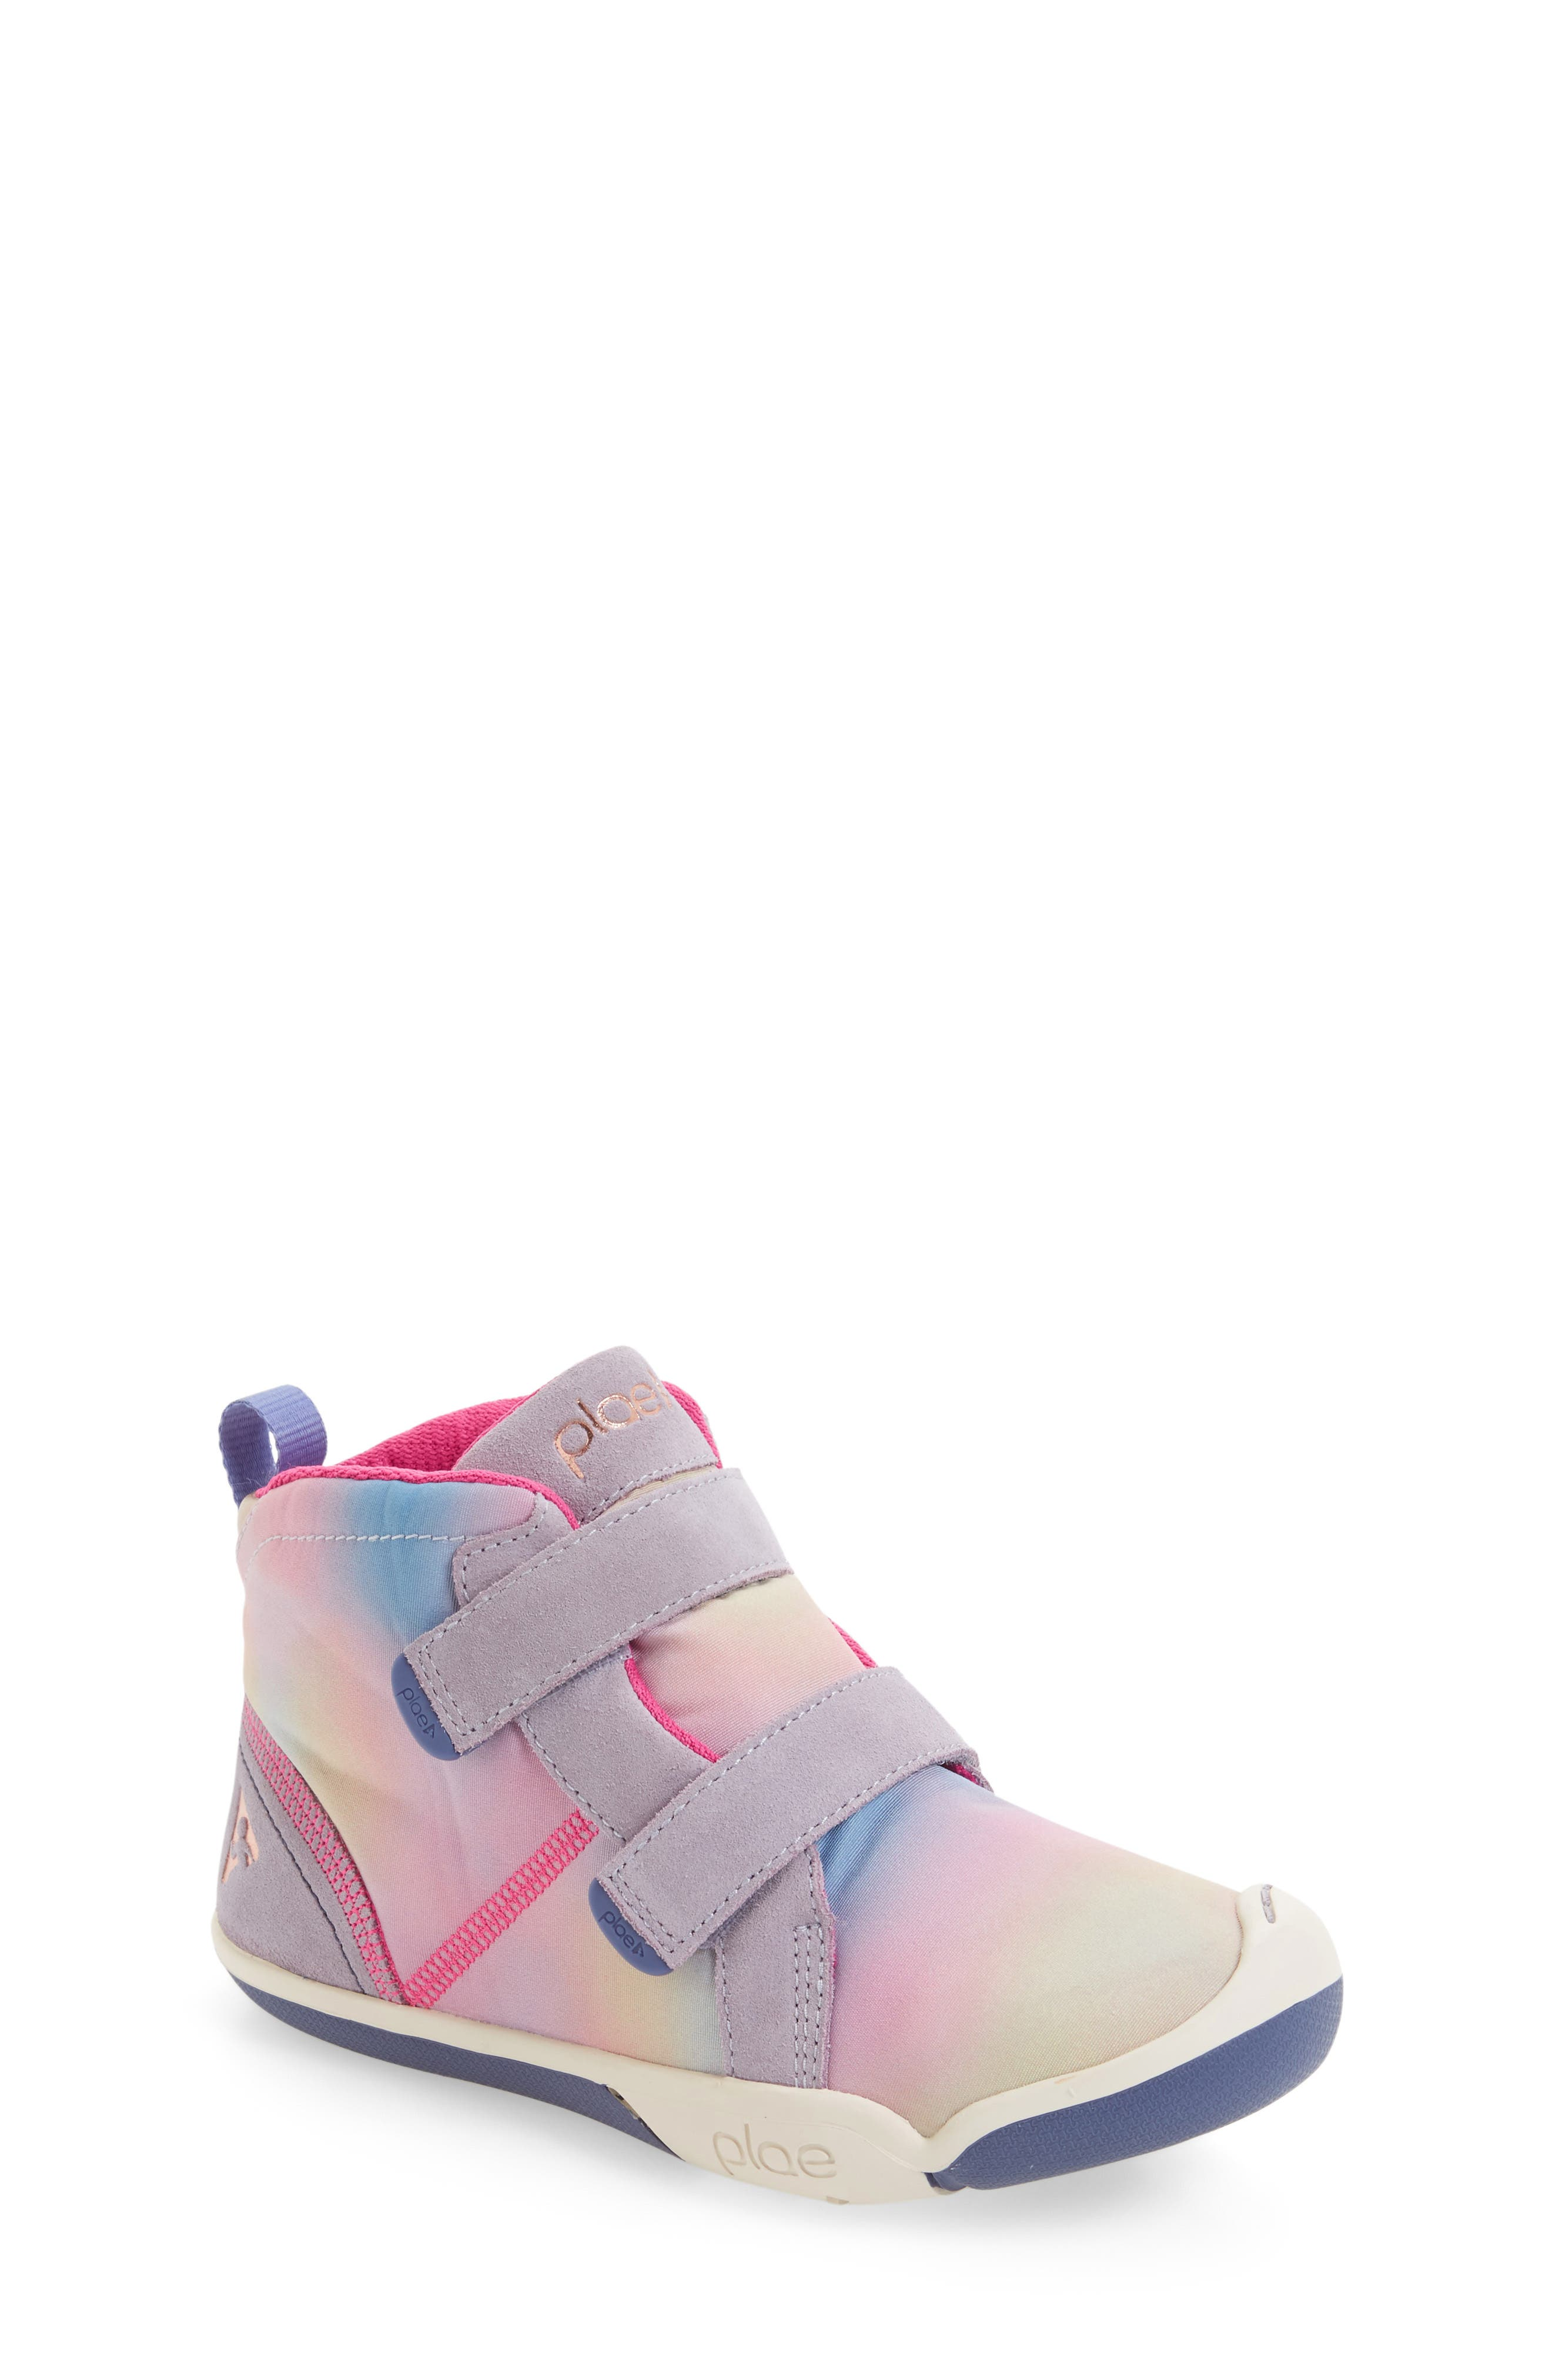 Max Customizable High Top Sneaker,                         Main,                         color, 650